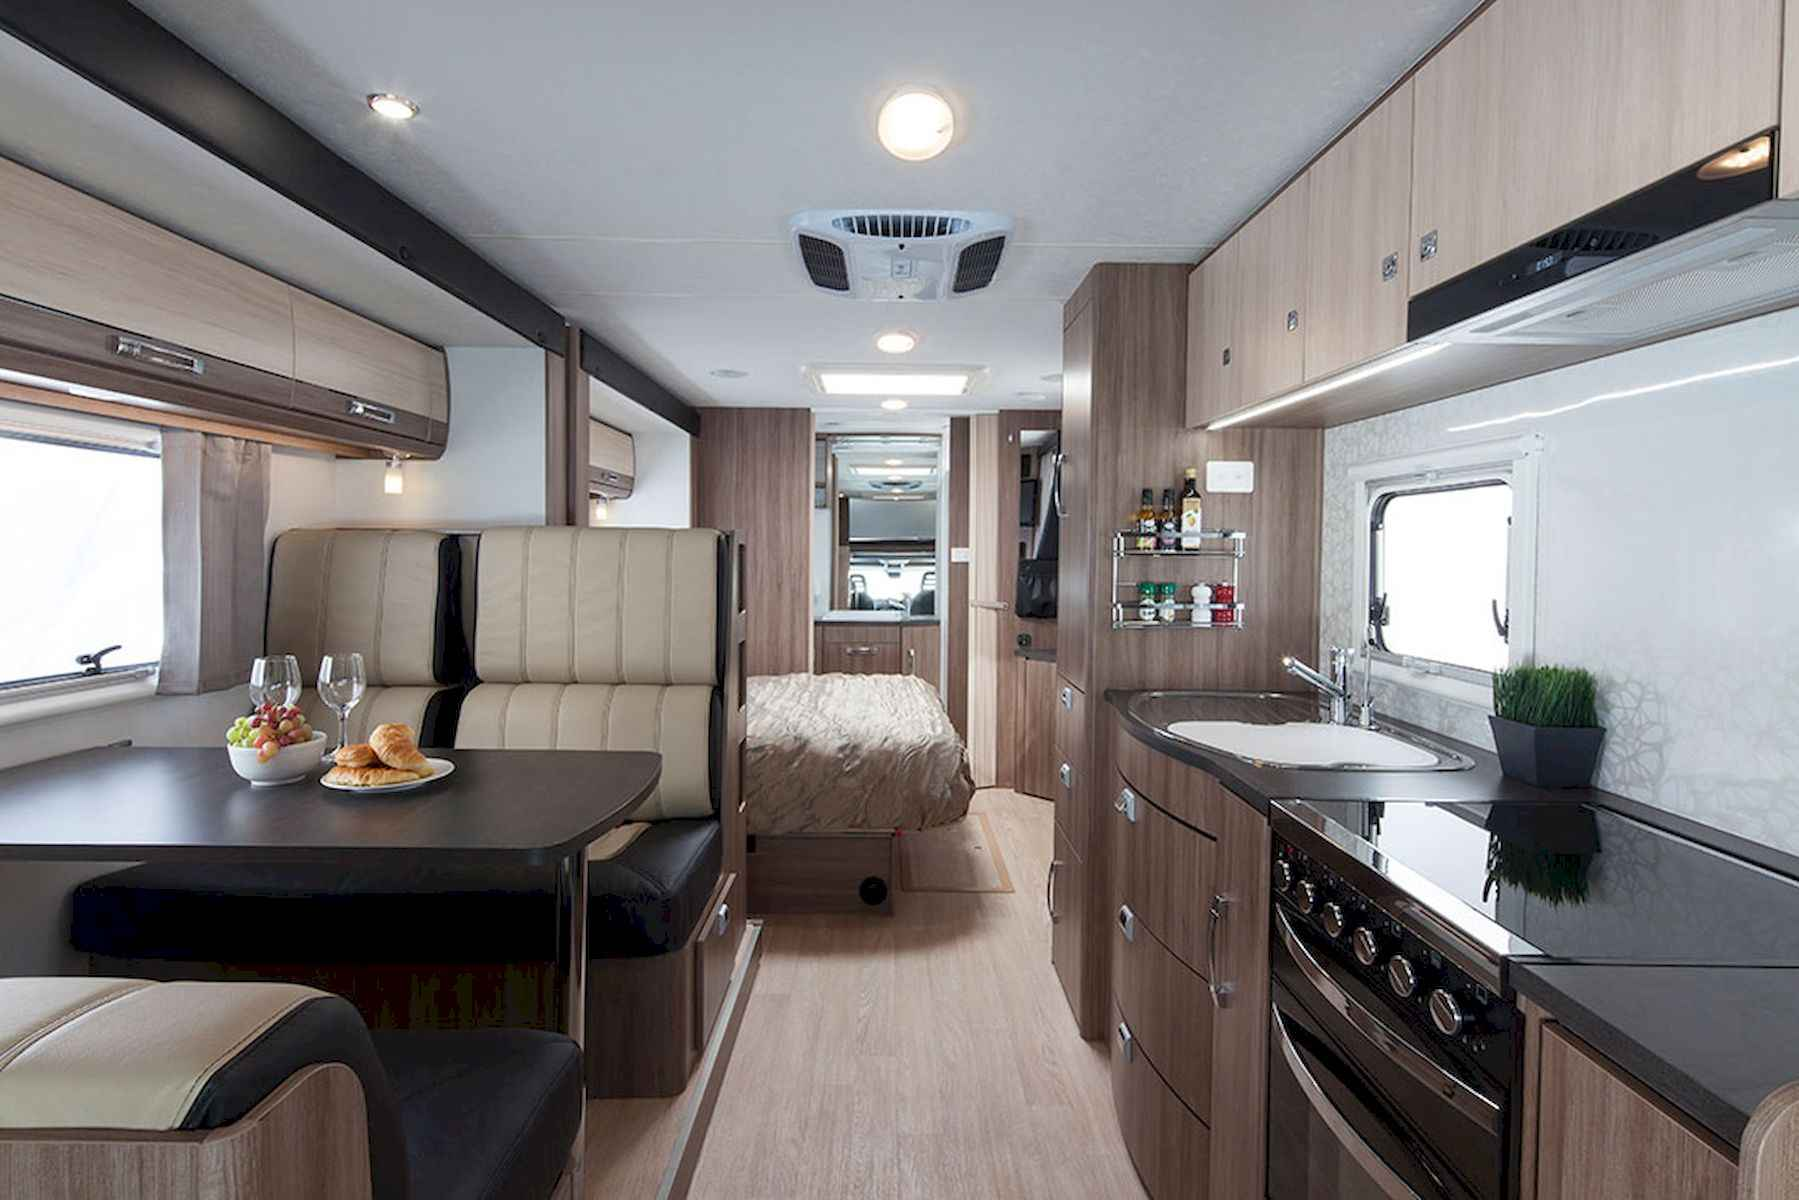 70 Stunning RV Living Camper Room Ideas Decorations Make Your Summer Awesome (45)